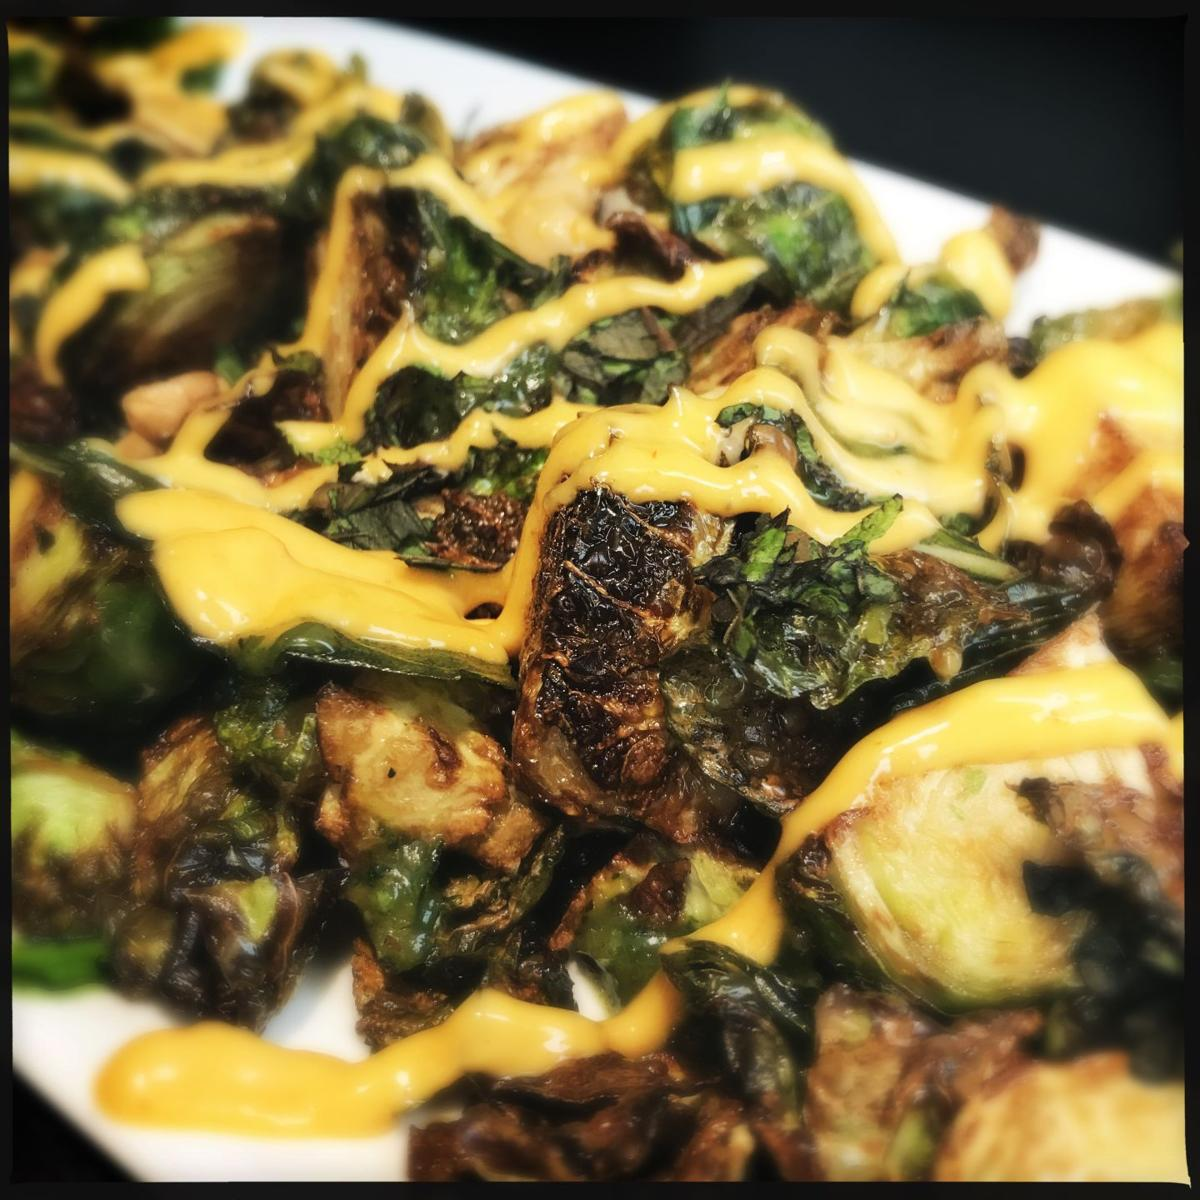 TASTE TEST: These aren't your momma's brussels sprouts